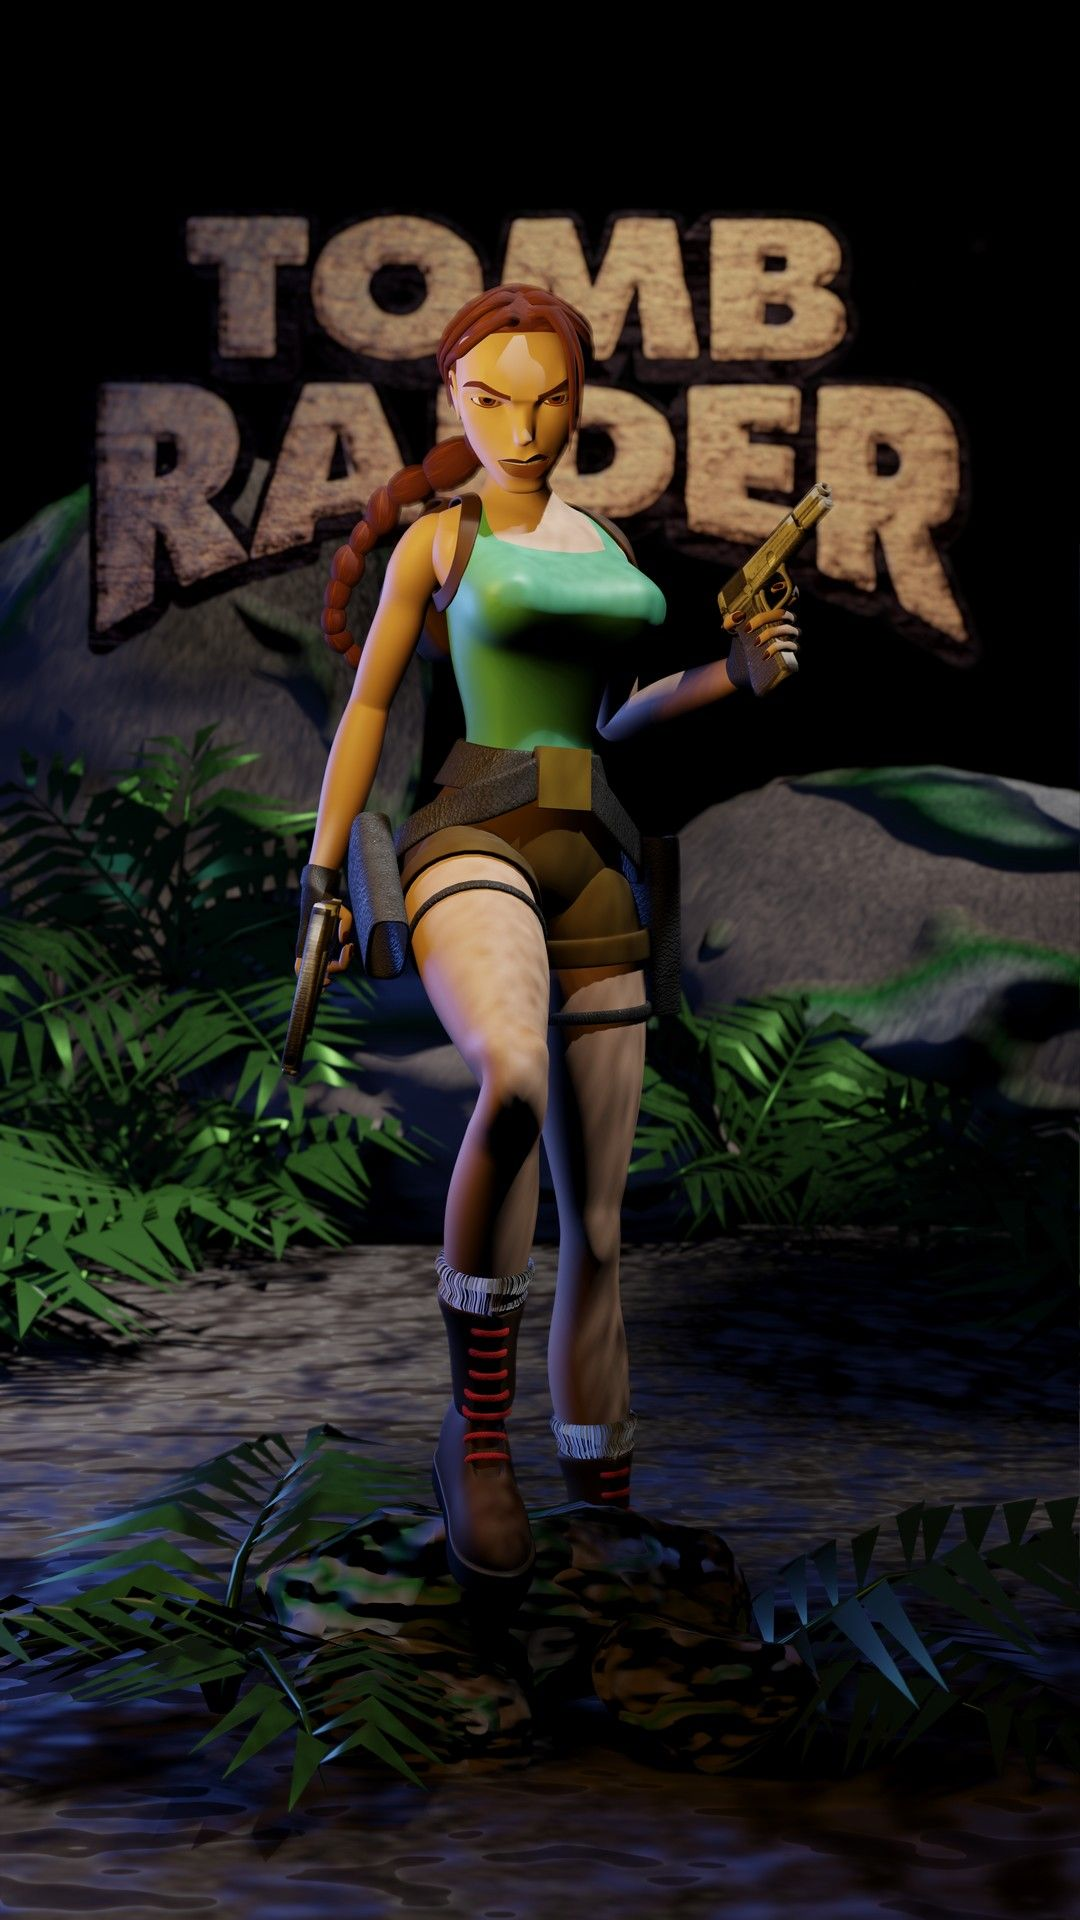 Tomb Raider favourites by outerbluefox on DeviantArt